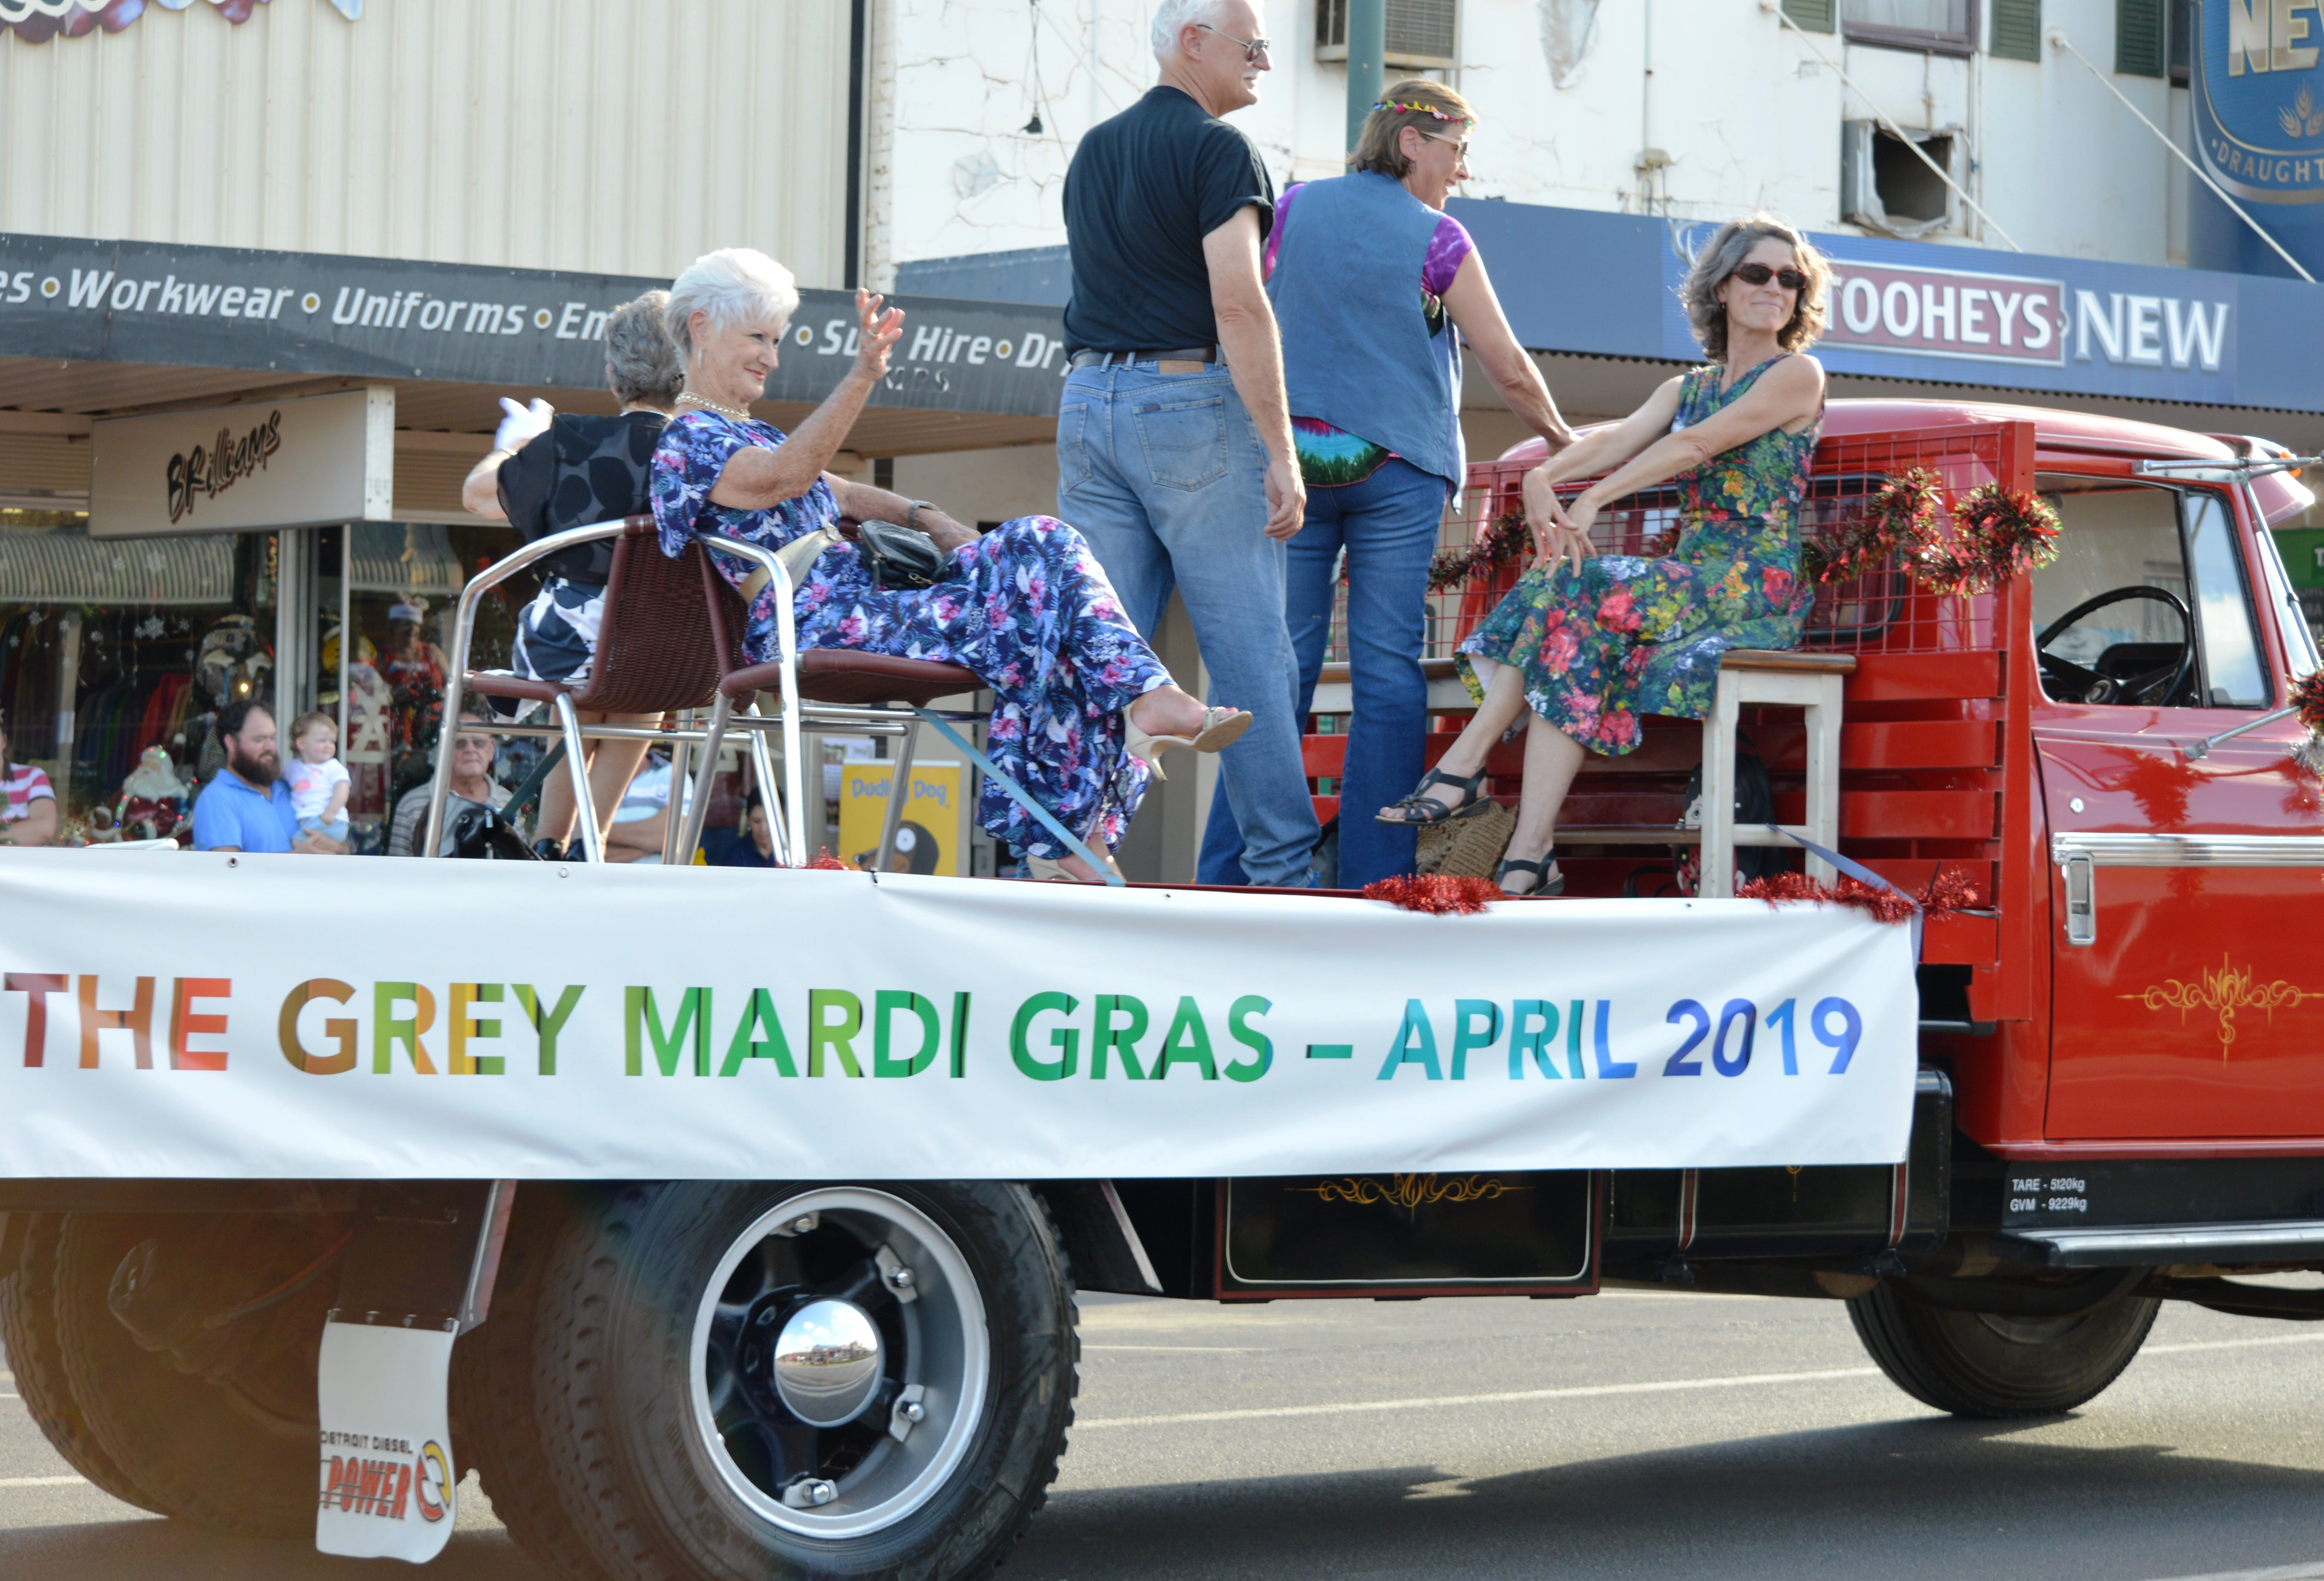 The Grey Mardi Gras - Broome Tourism